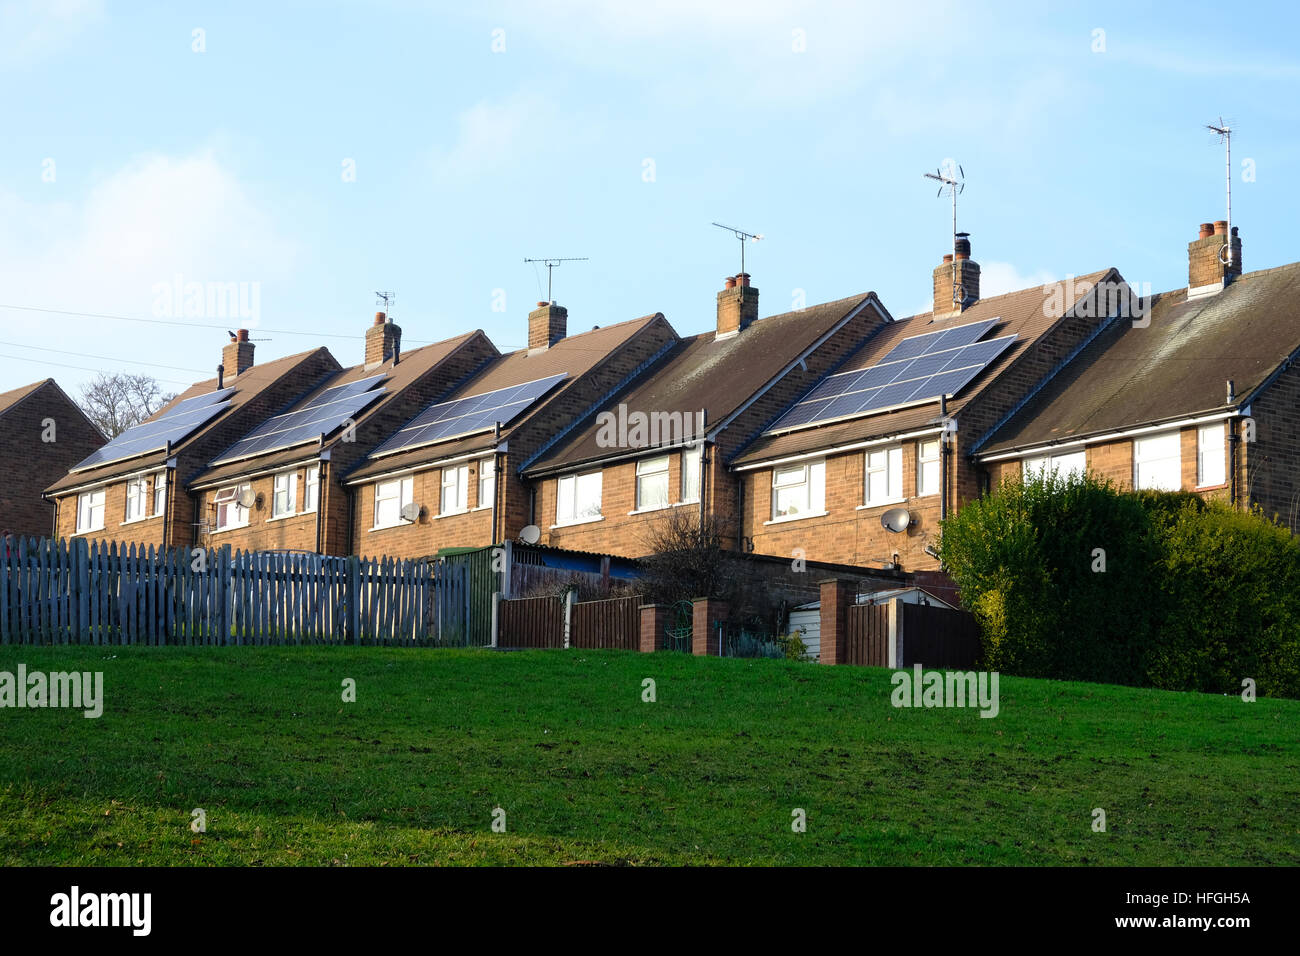 1950s Houses solar panels on a row of 1950s houses in wales stock photo